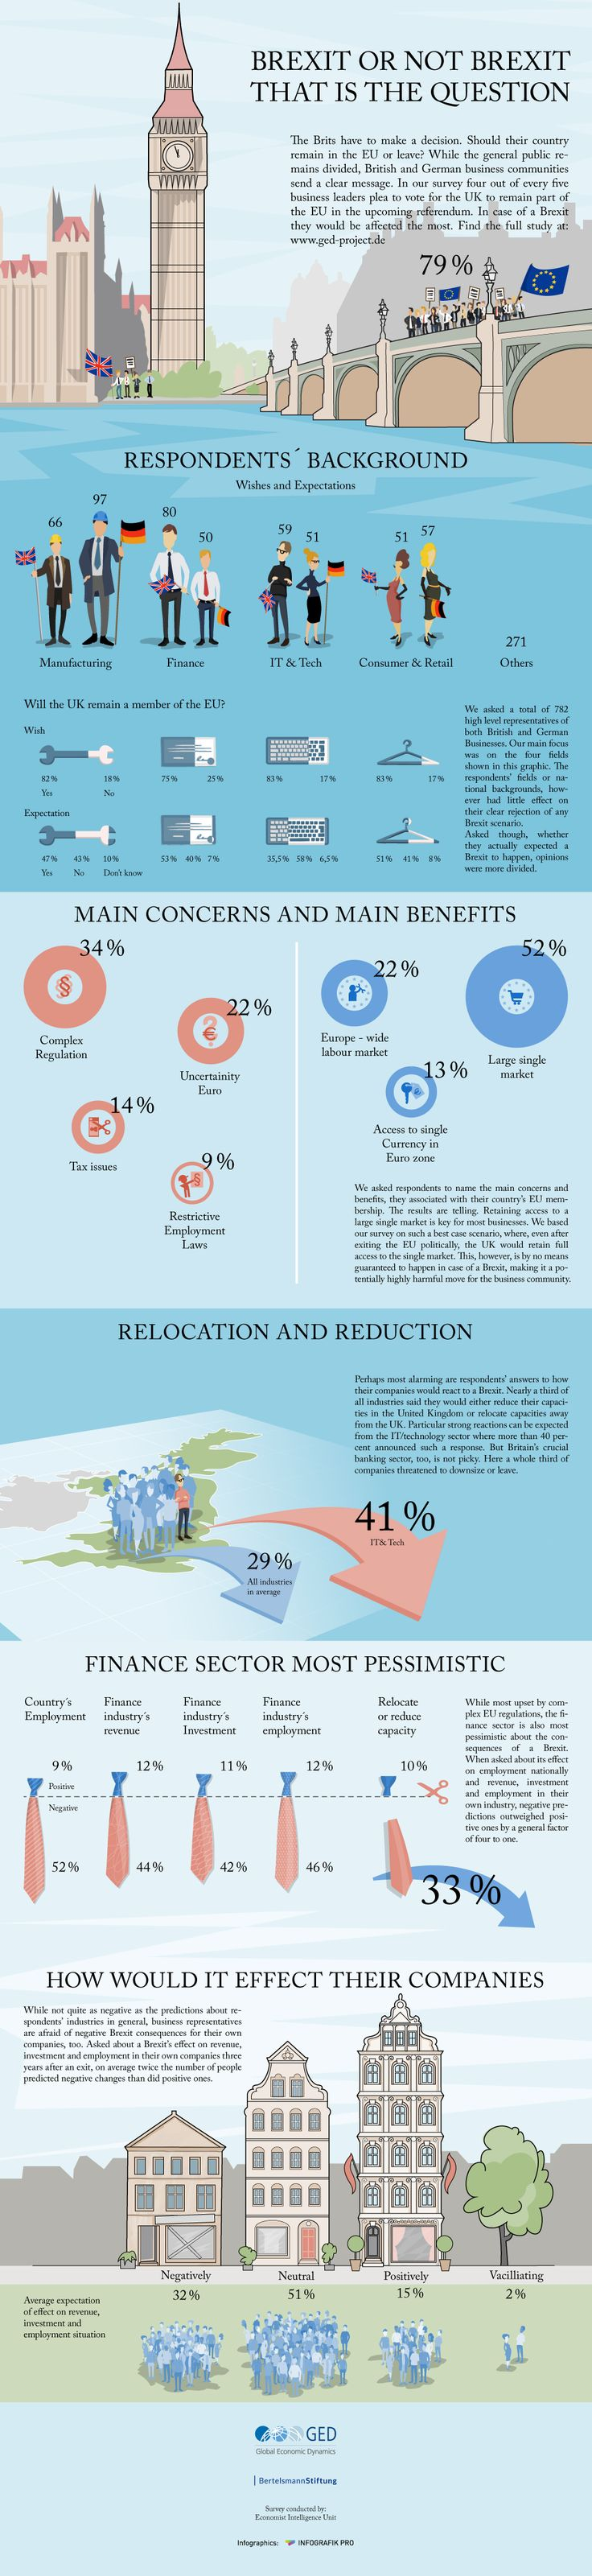 Brexit or not Brexit. That is the question #infographic #Business